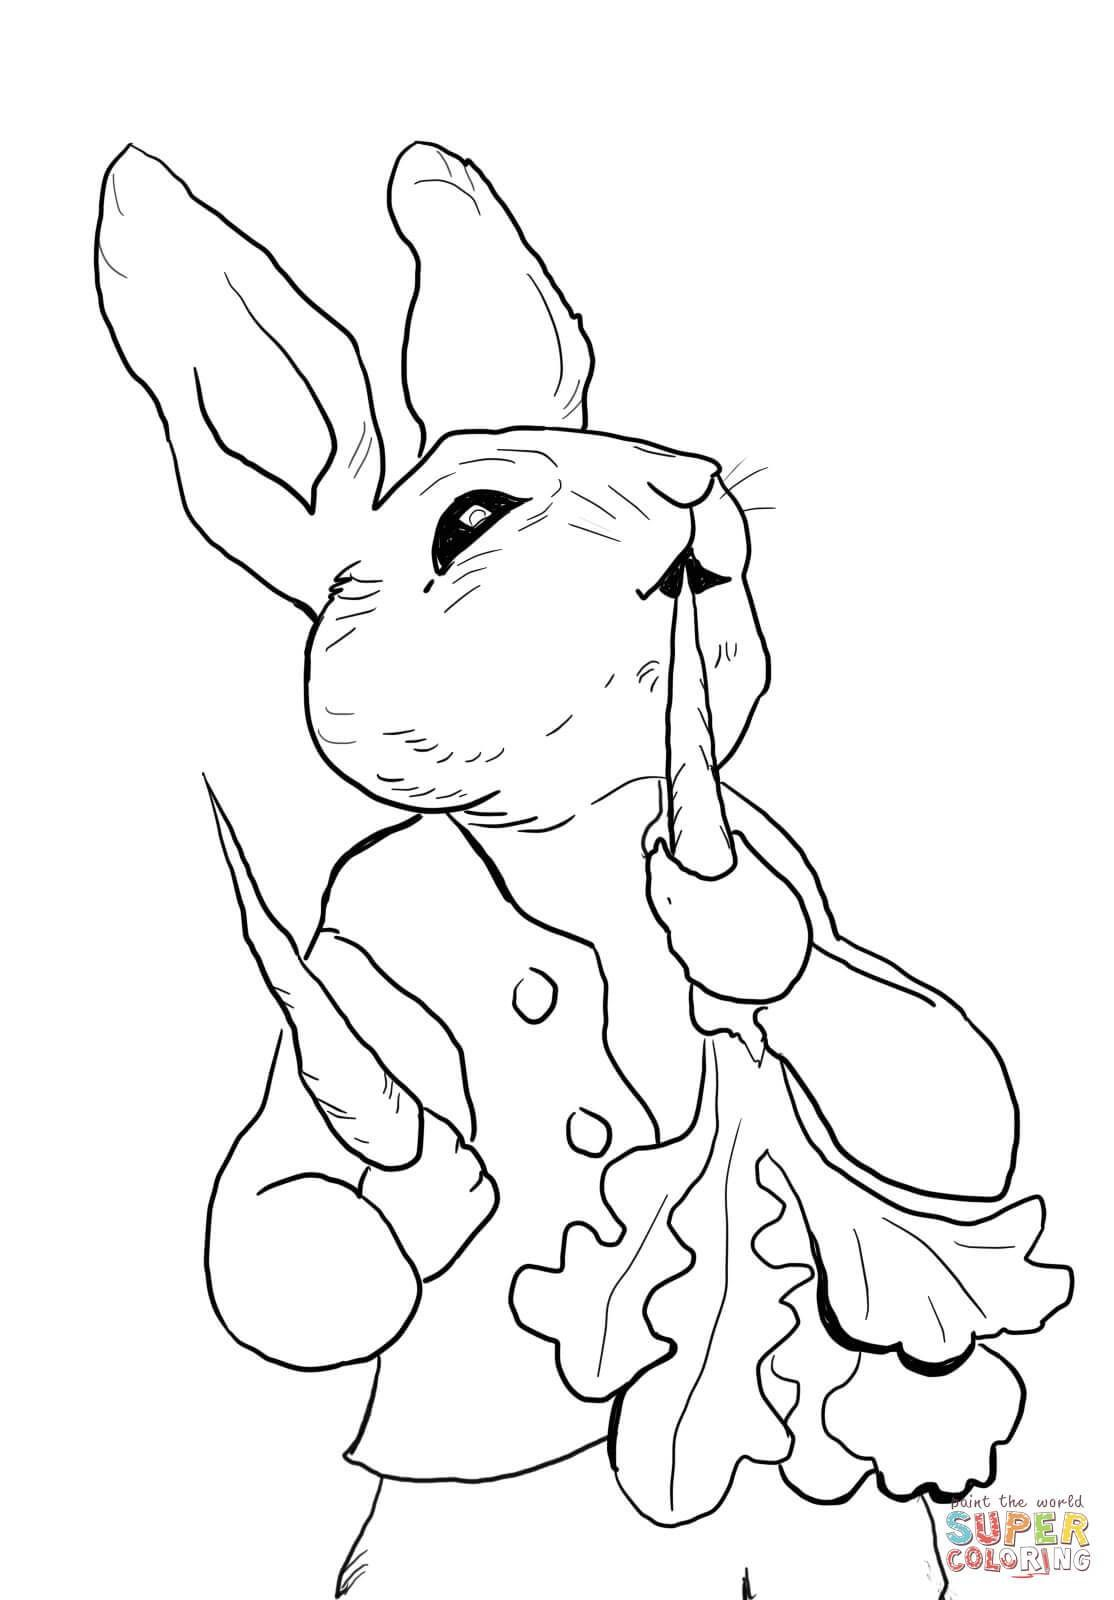 peter rabbit coloring pages print peter rabbit eating radishes coloring page printable peter page